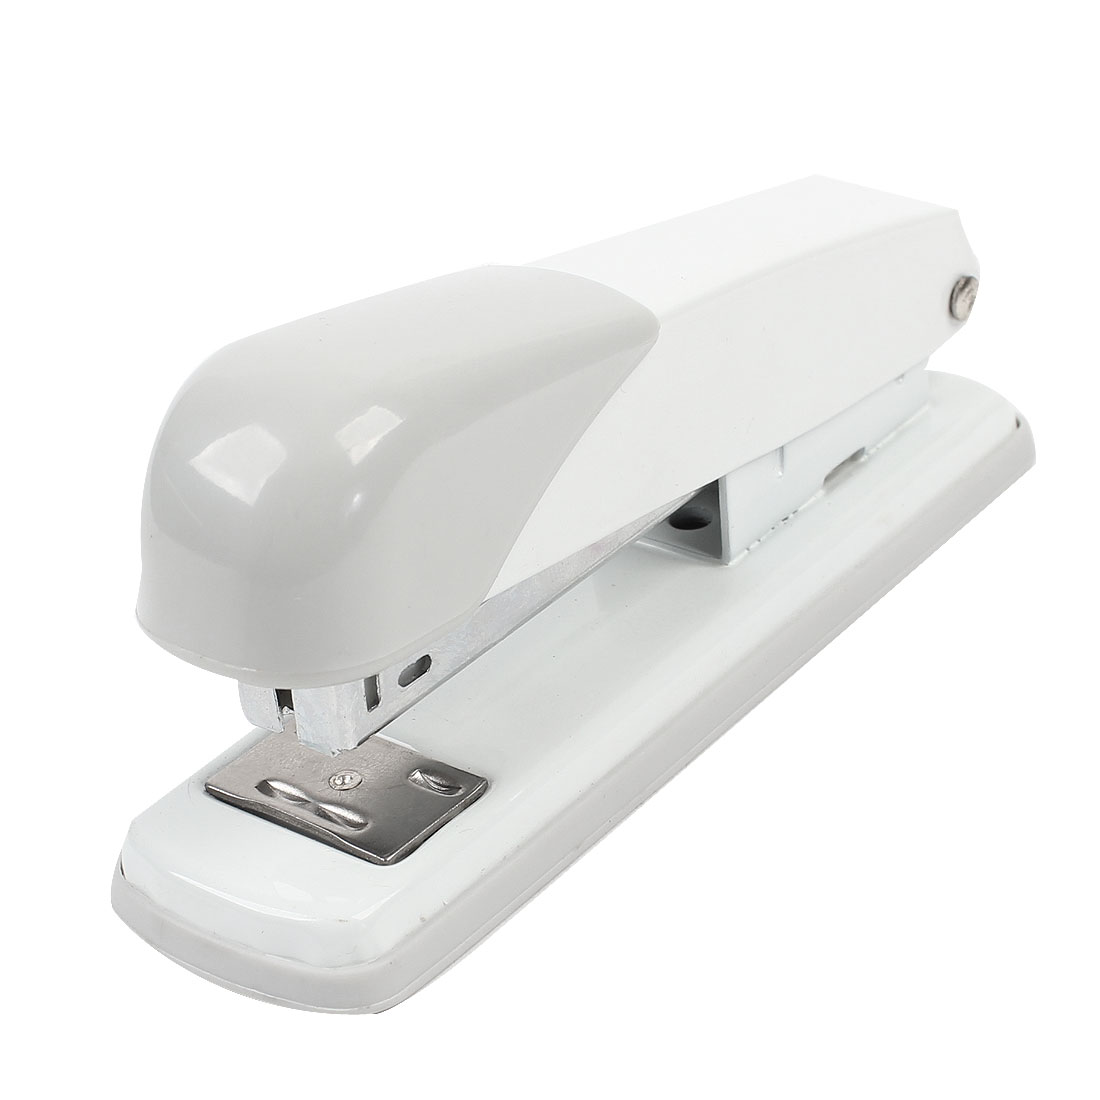 White Light Gray Plastic Housing 24/6 26 Staples Office Desk Stapler